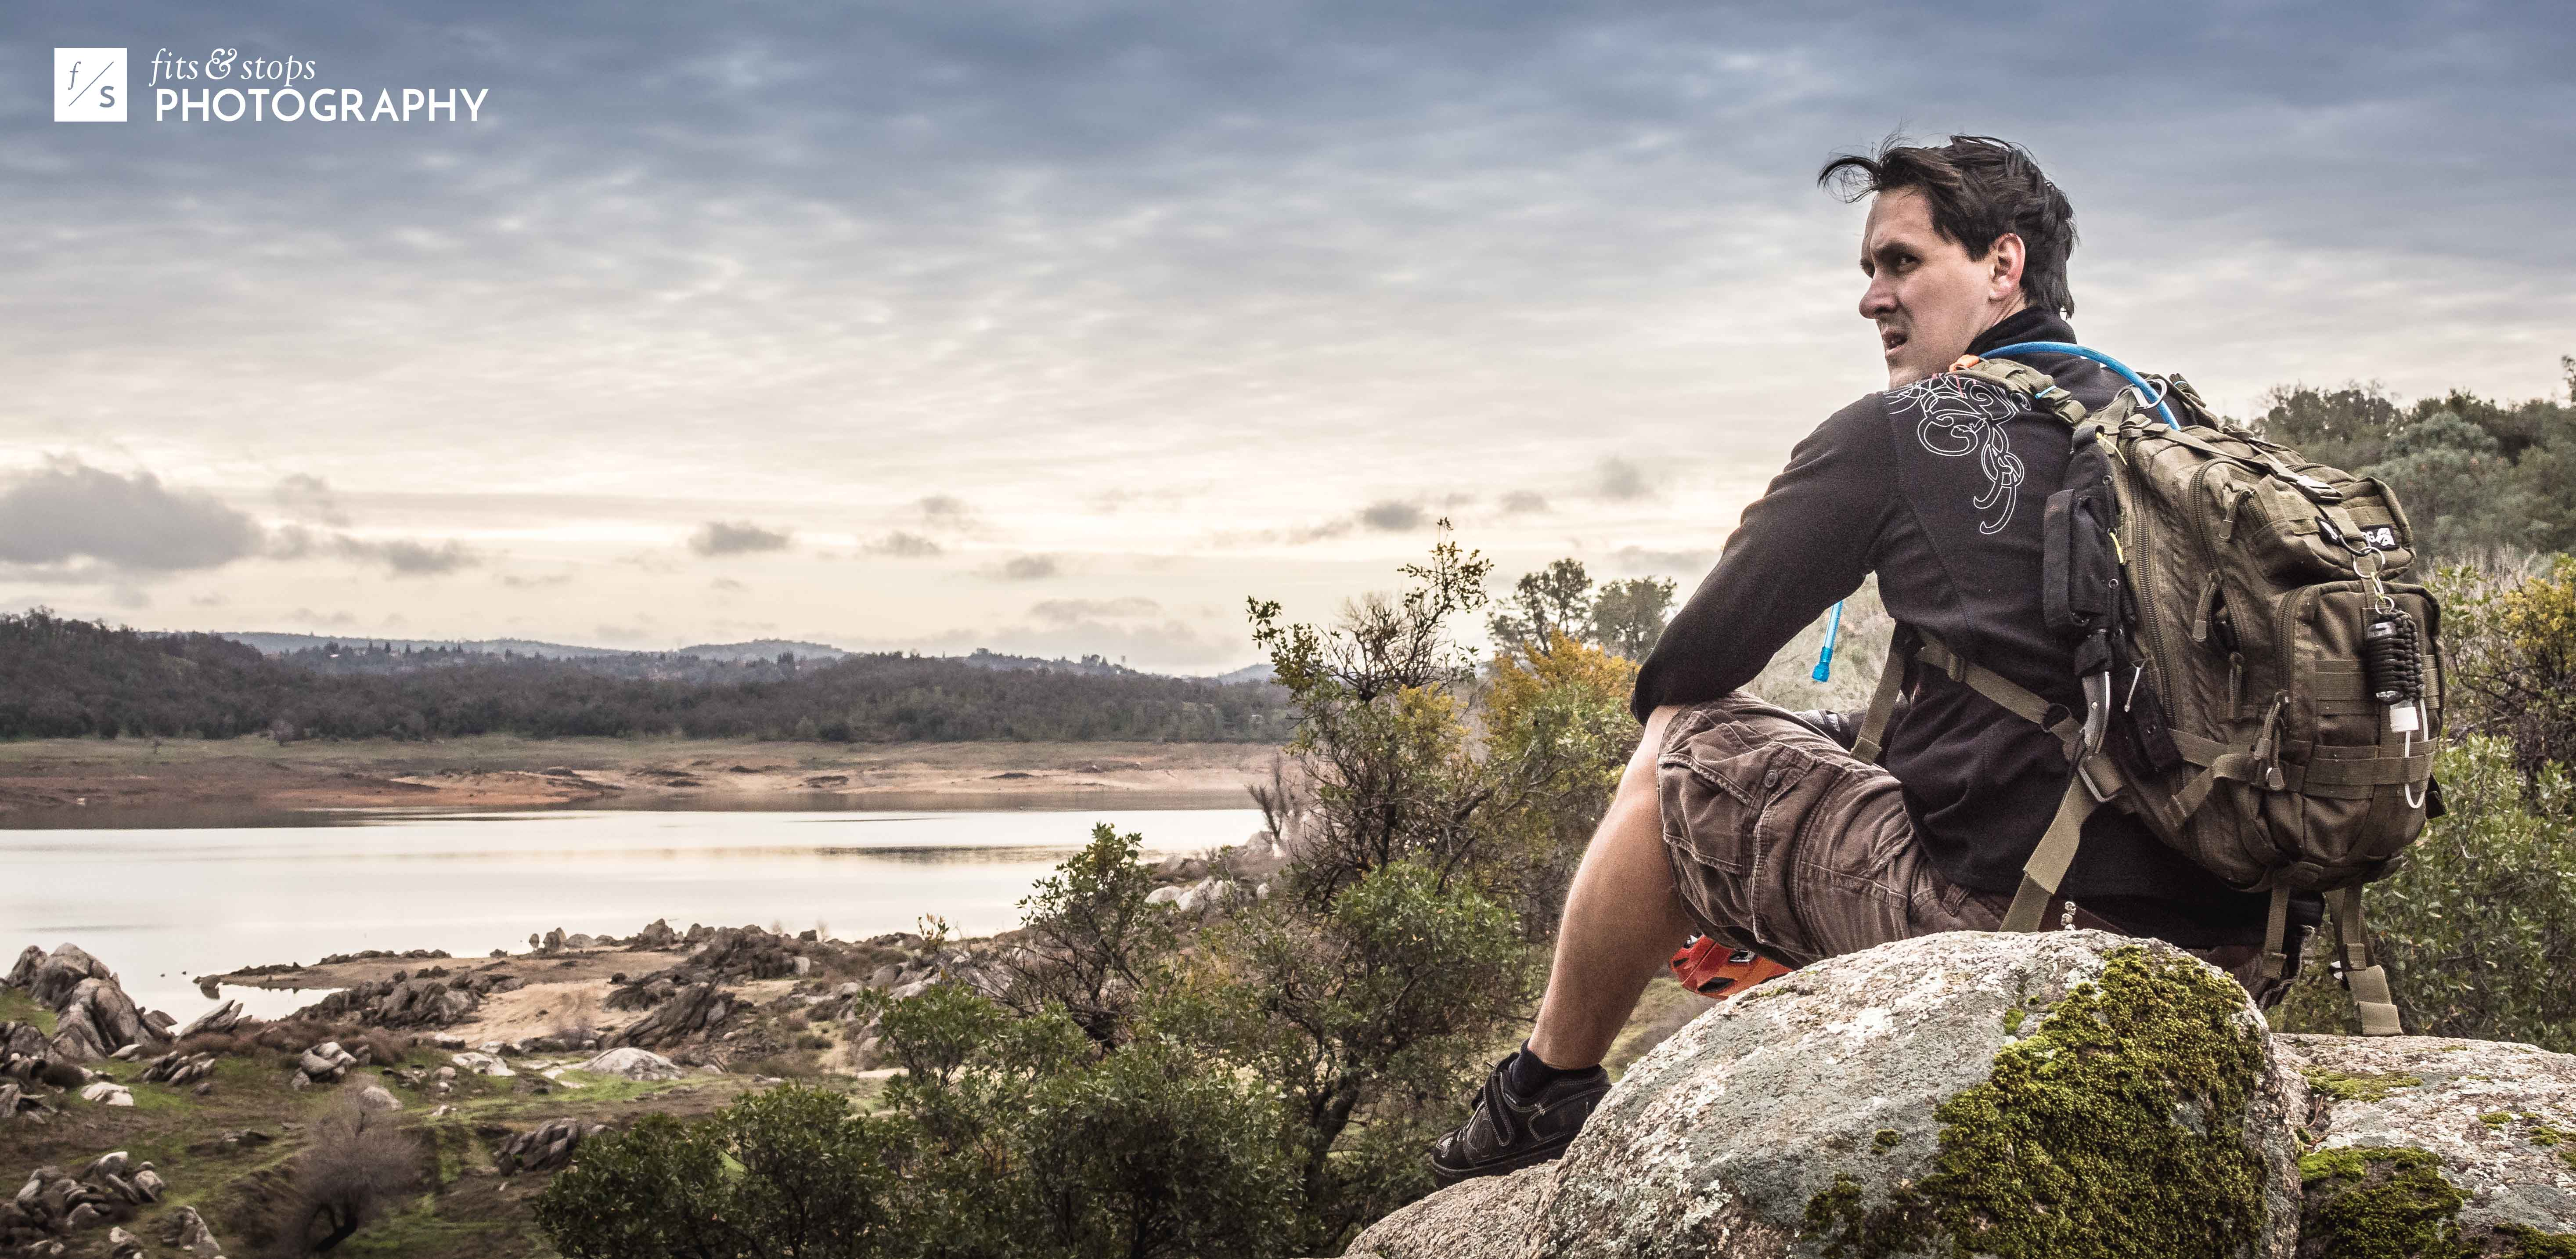 A high-clarity photograph of a mountain biker taking a break on a rock, overlooking the landscape of Doton's Cove at Folsom Lake in Northern California.